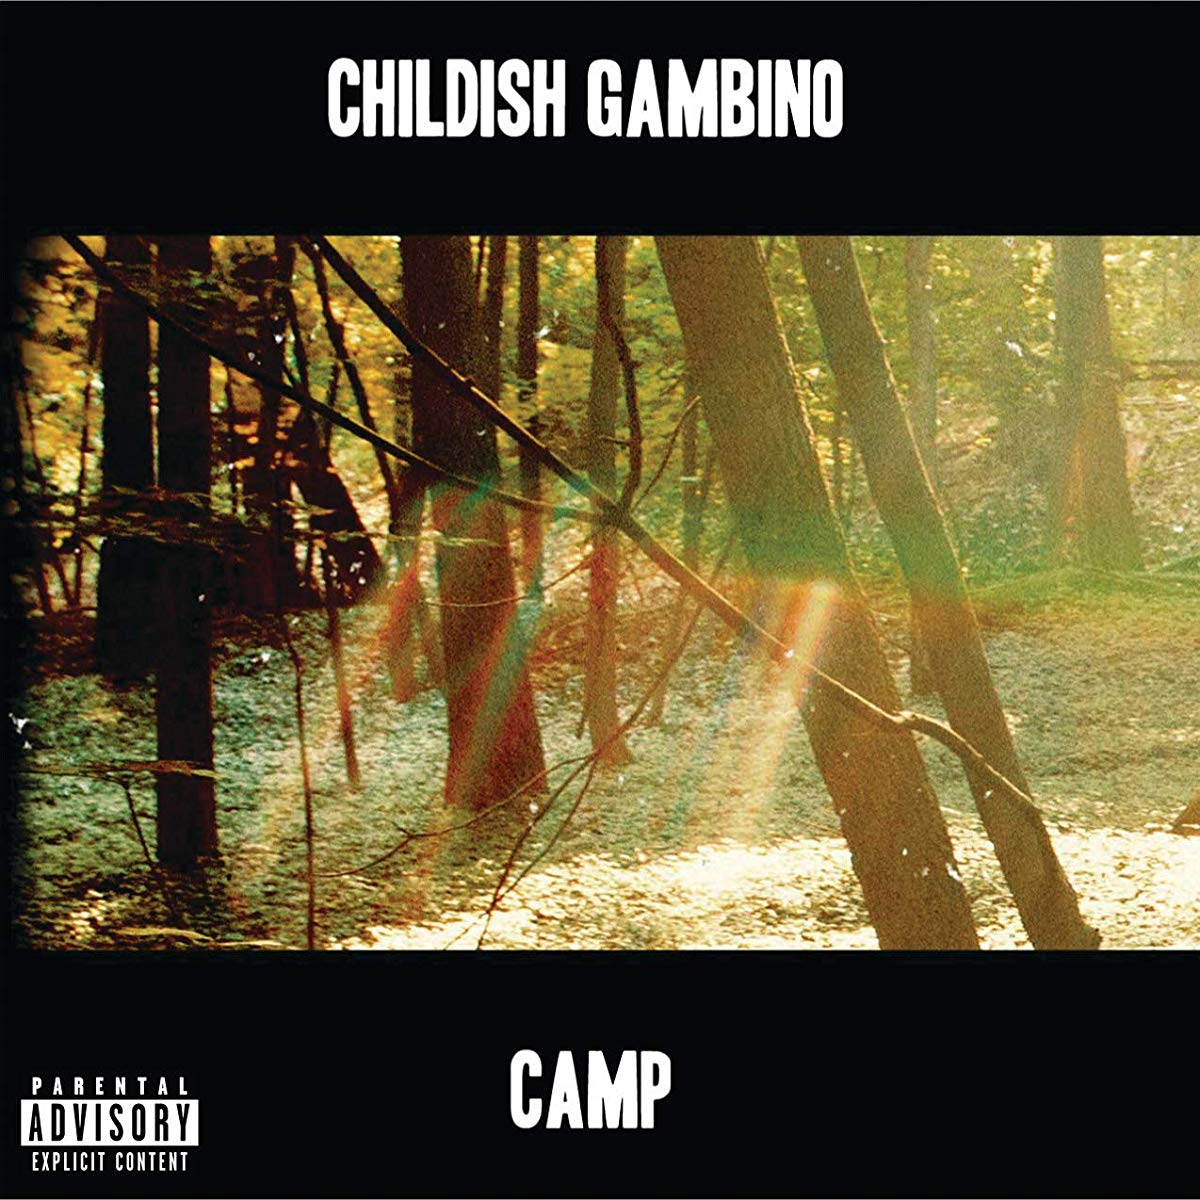 CAMP, le premier album studio de Childish Gambino